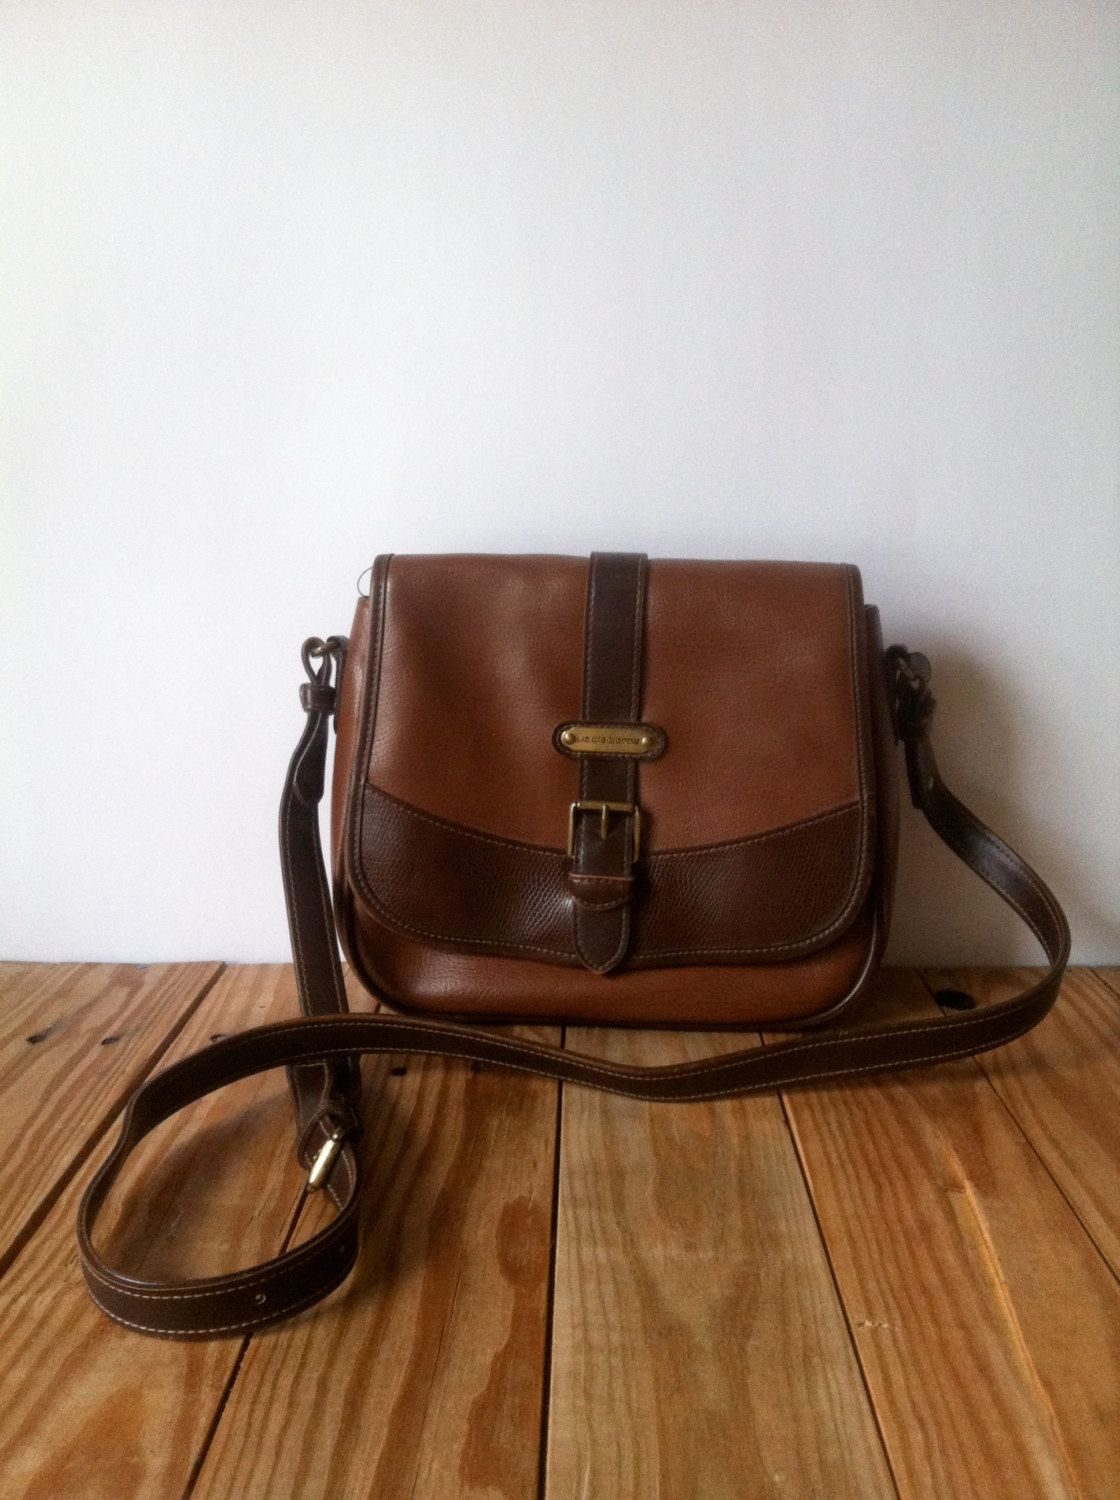 Genuine Leather Purse - Vintage Earthy Simple Rustic Liz Claiborne Shoulder  Bag Cross Body Handbag Brown   Tan via Etsy. 021807f1f5c9d